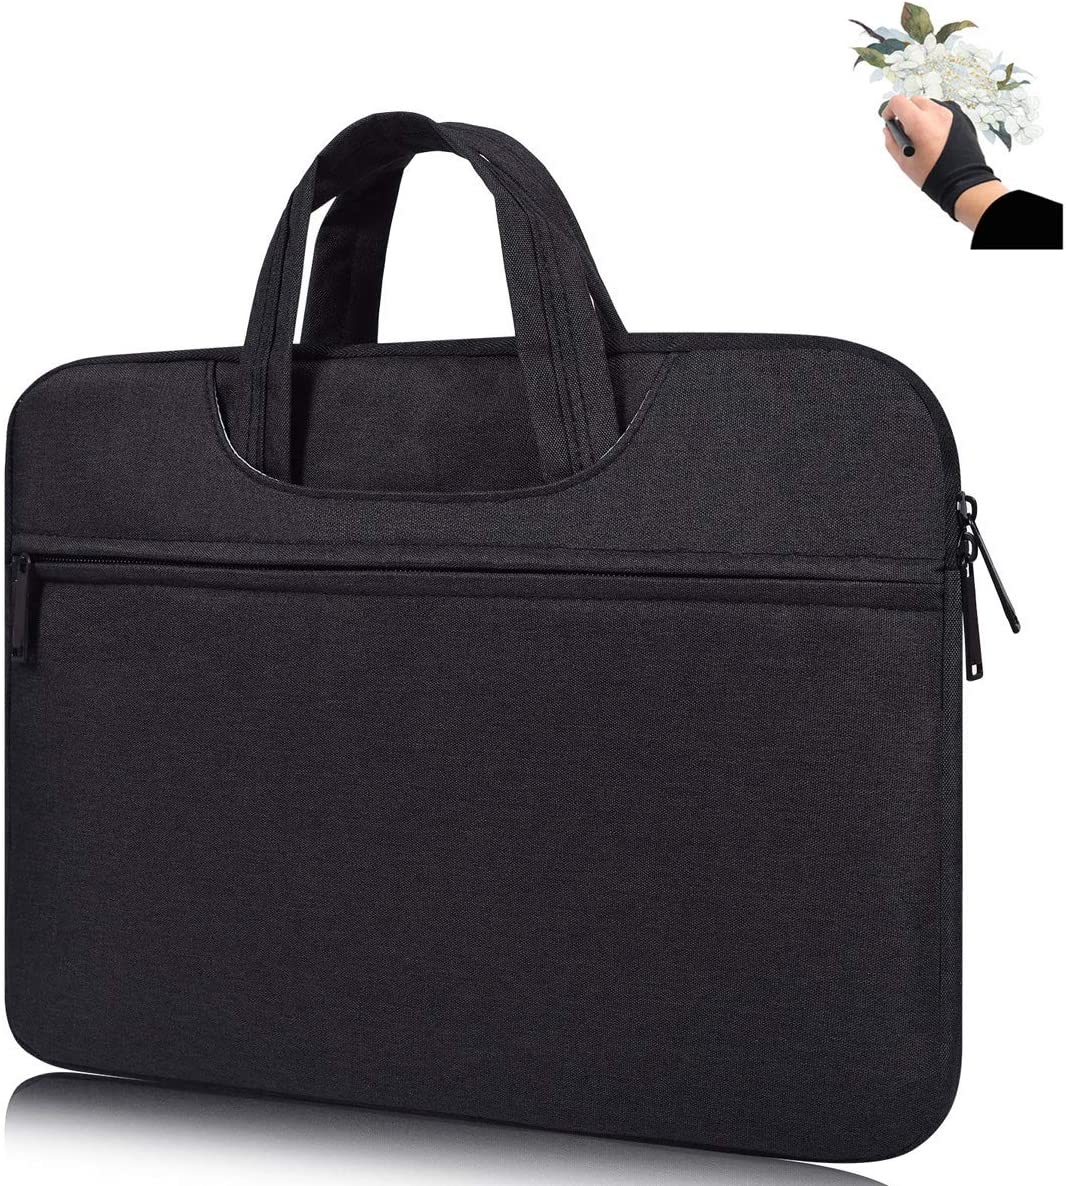 Portable Drawing Tablet Monitor Case Bag Carrying Courier shipping free shipping Protective Com Bombing free shipping